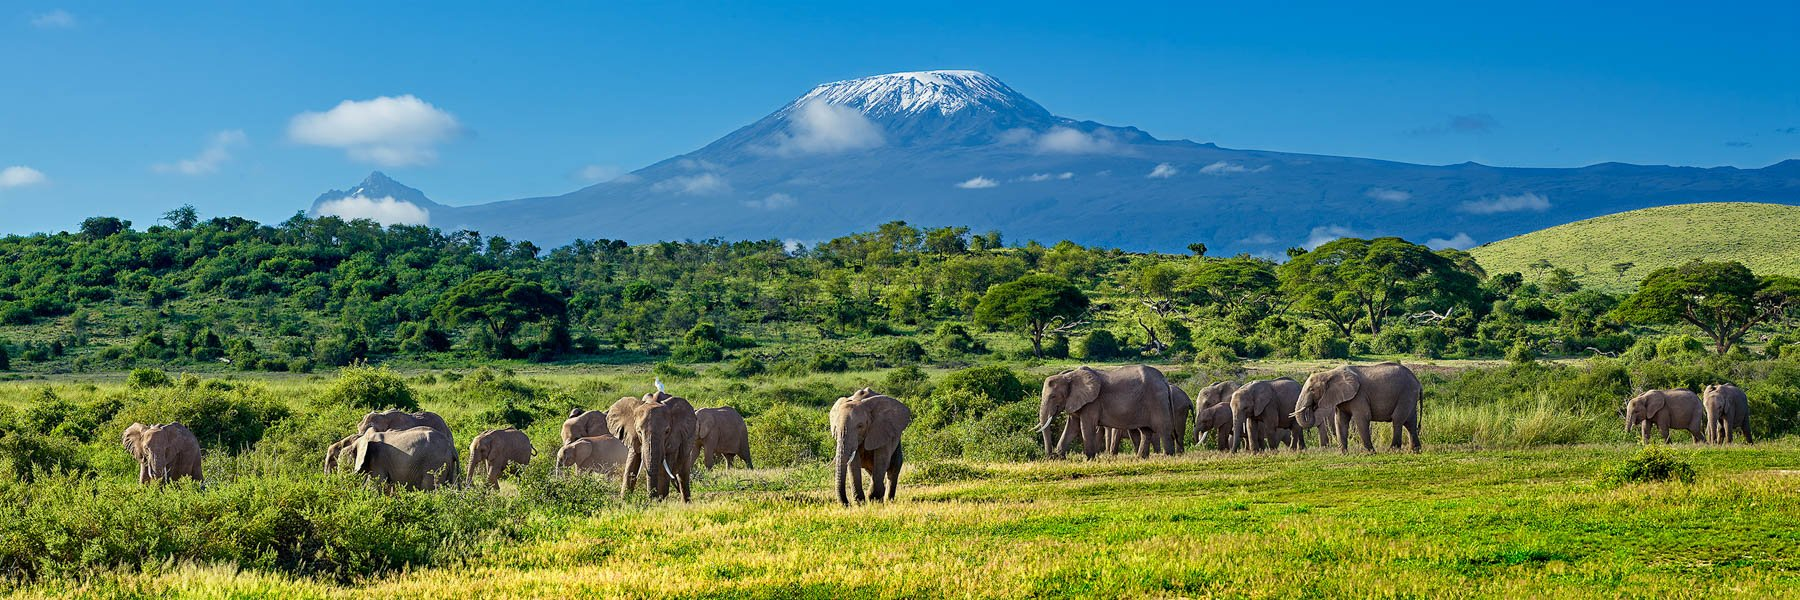 Herd of elephants with Mount Kilimanjaro towering in the background, Kenya, Africa.